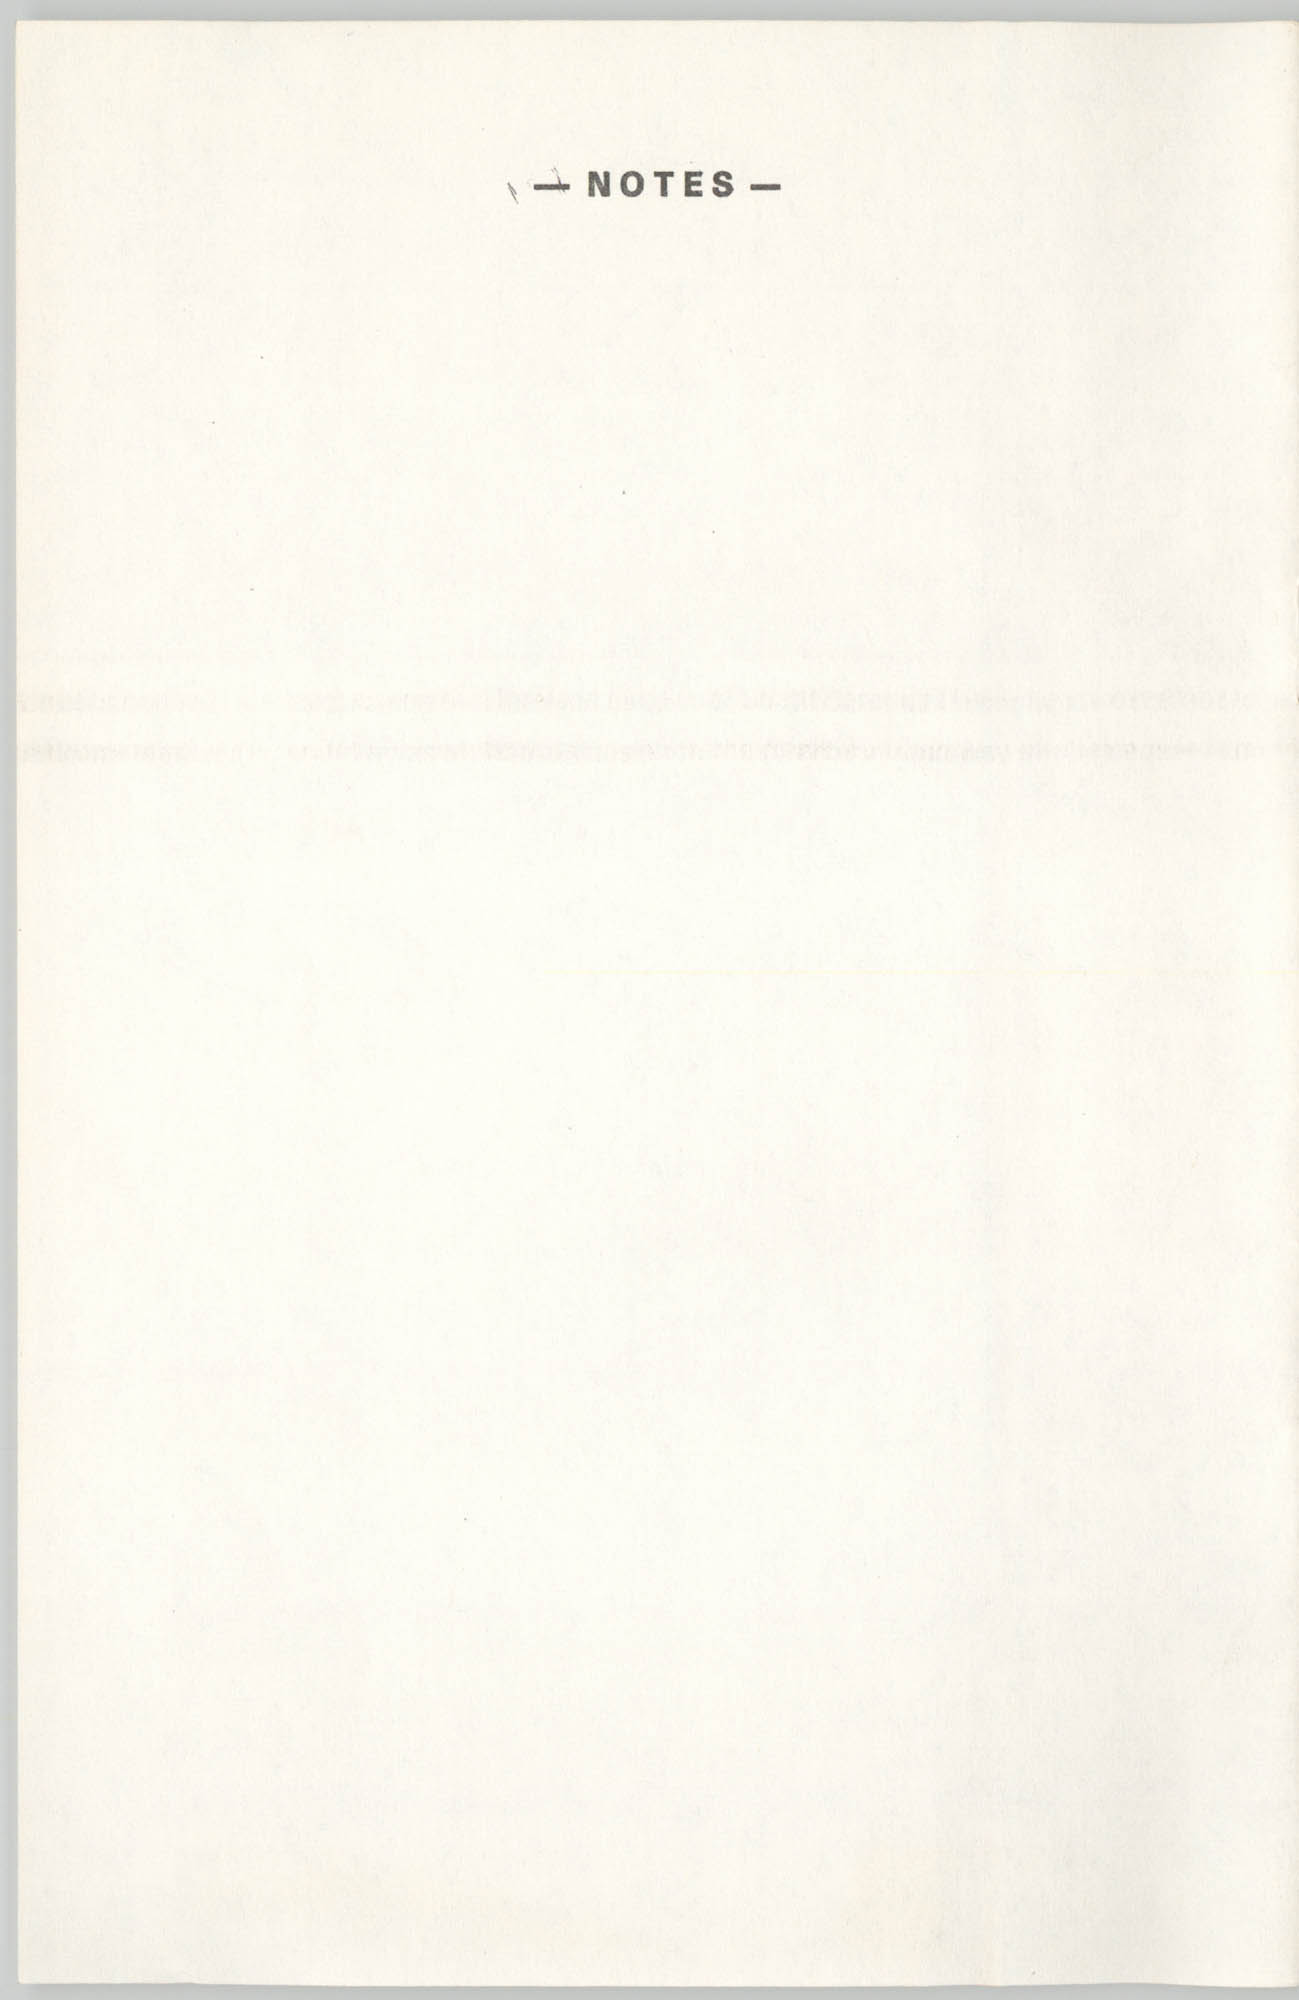 State of South Carolina Directory of Registered Social Workers, 1977, Page 21